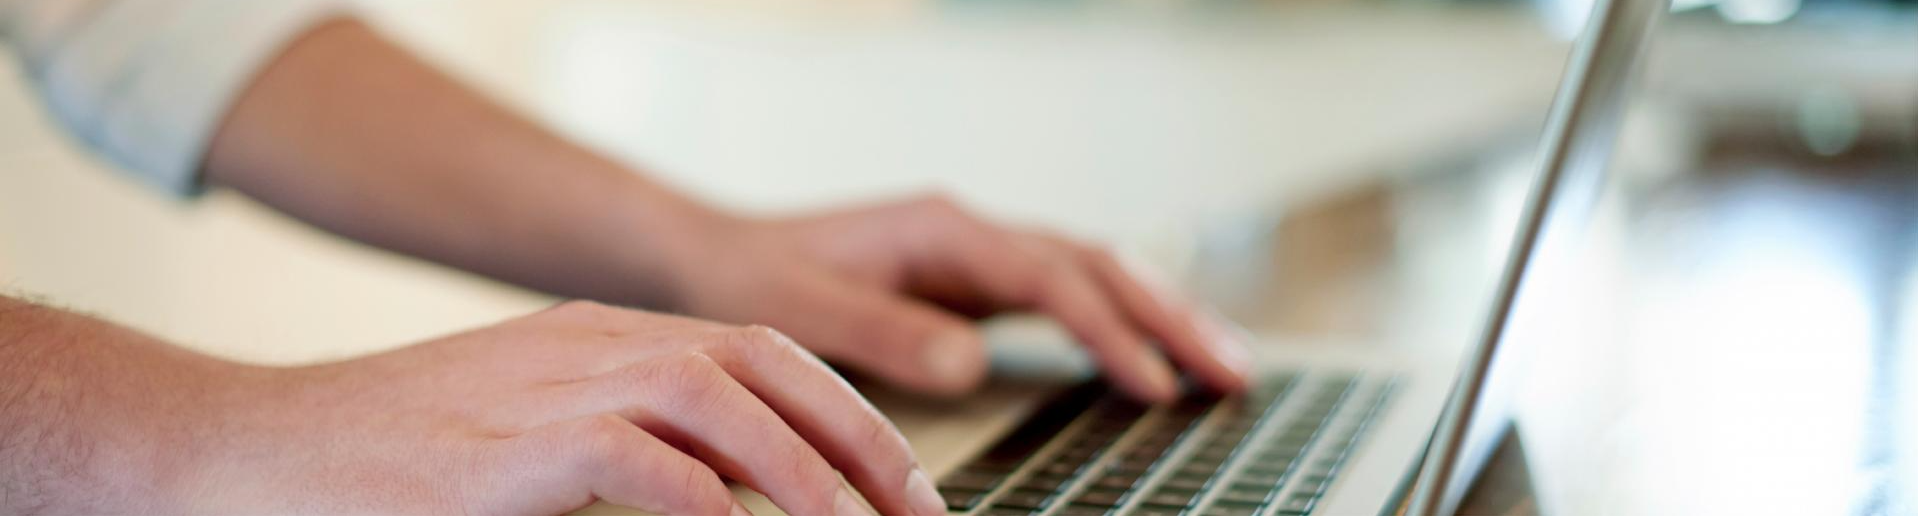 Stock photo of someone typing on a laptop